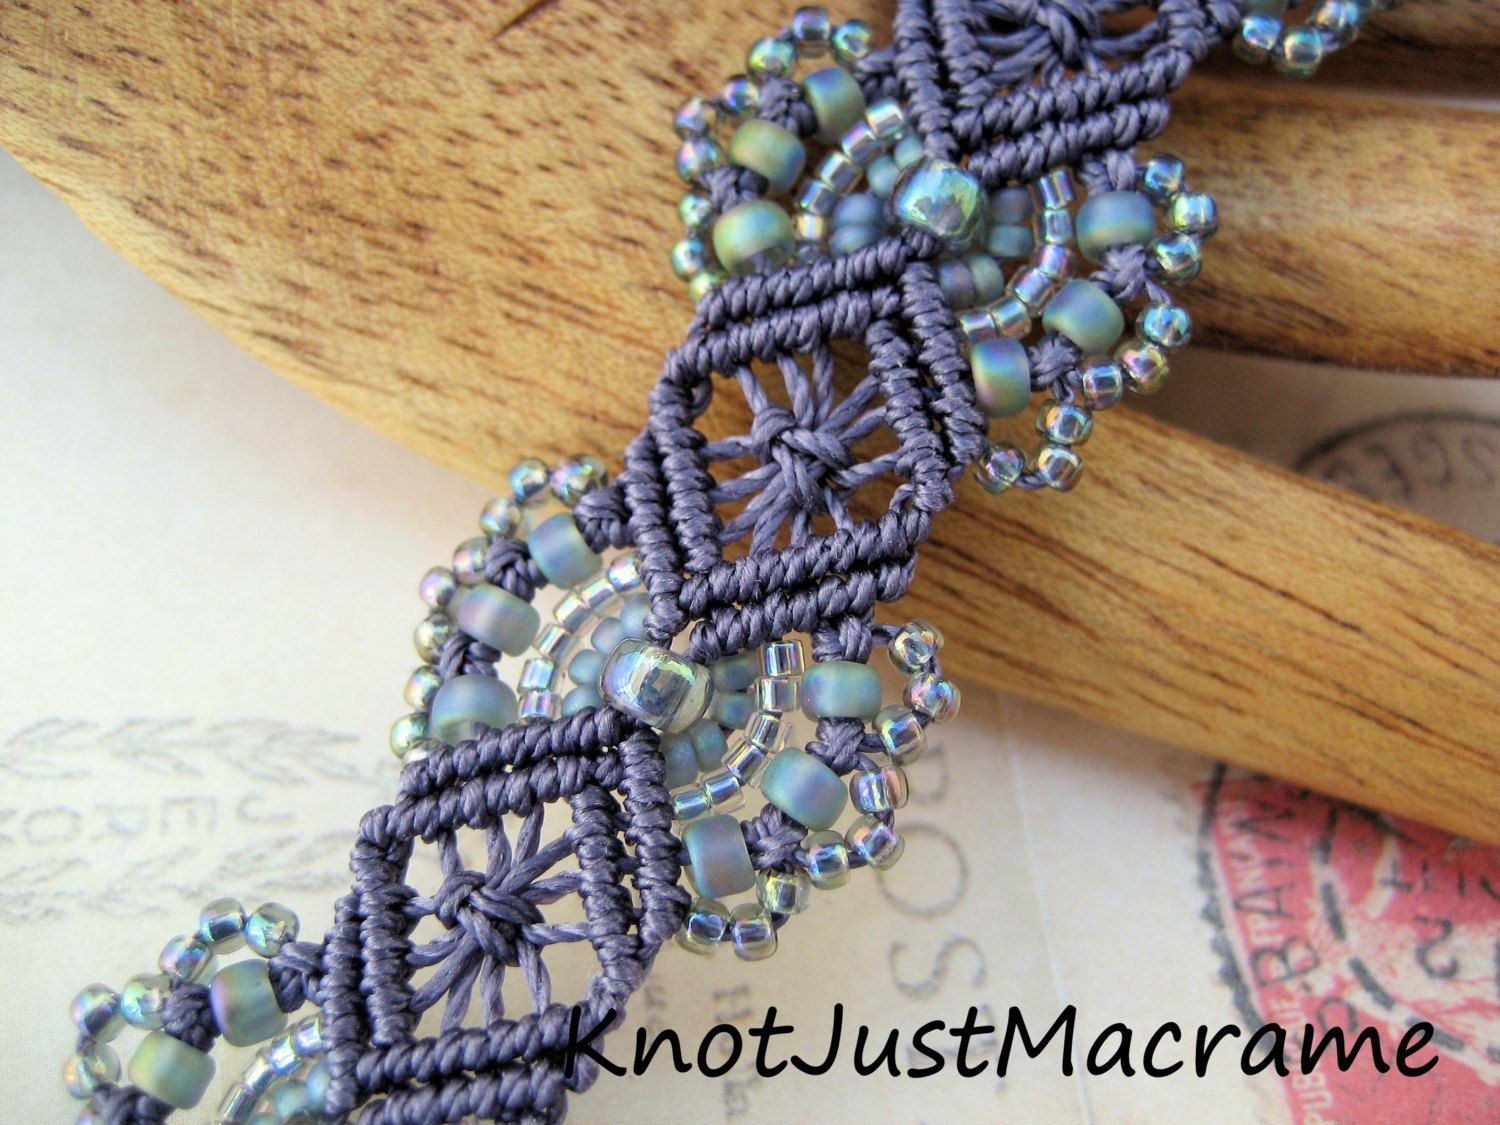 macrame jewelry patterns micro macrame tutorial hydrangeas bracelet pattern 2946